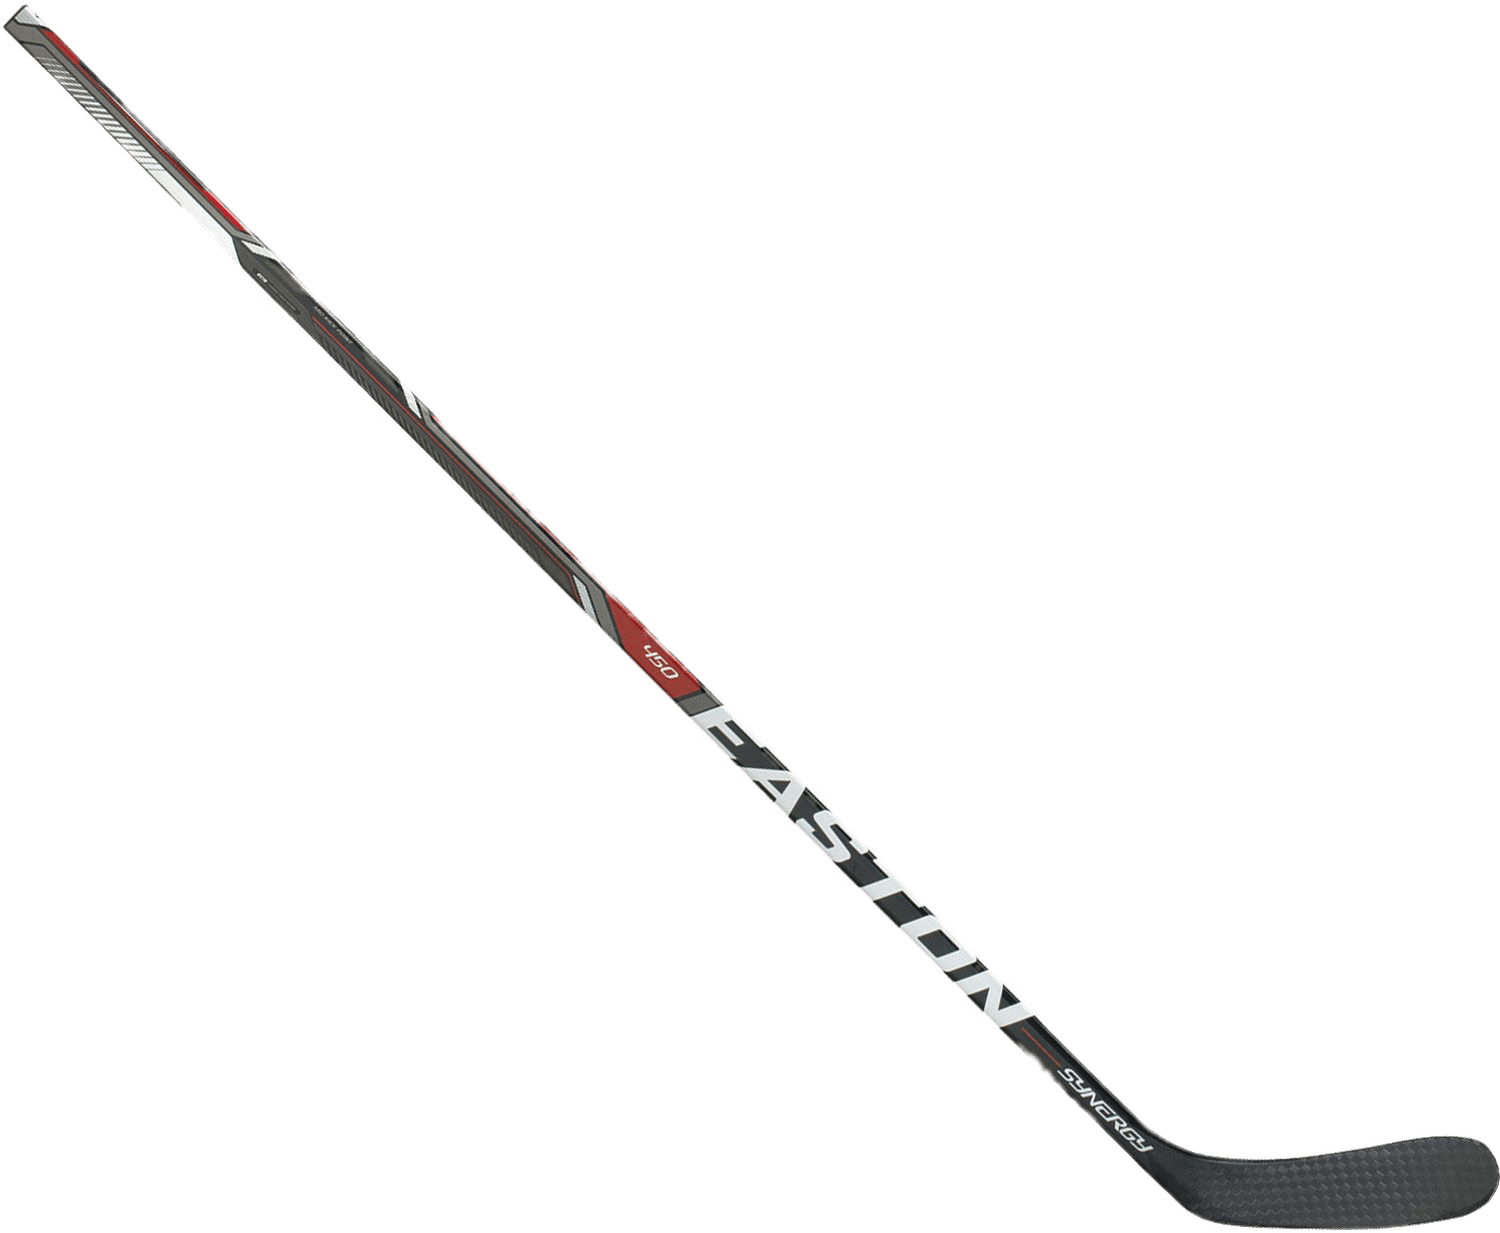 Easton Ice Hockey Stick transparent PNG.